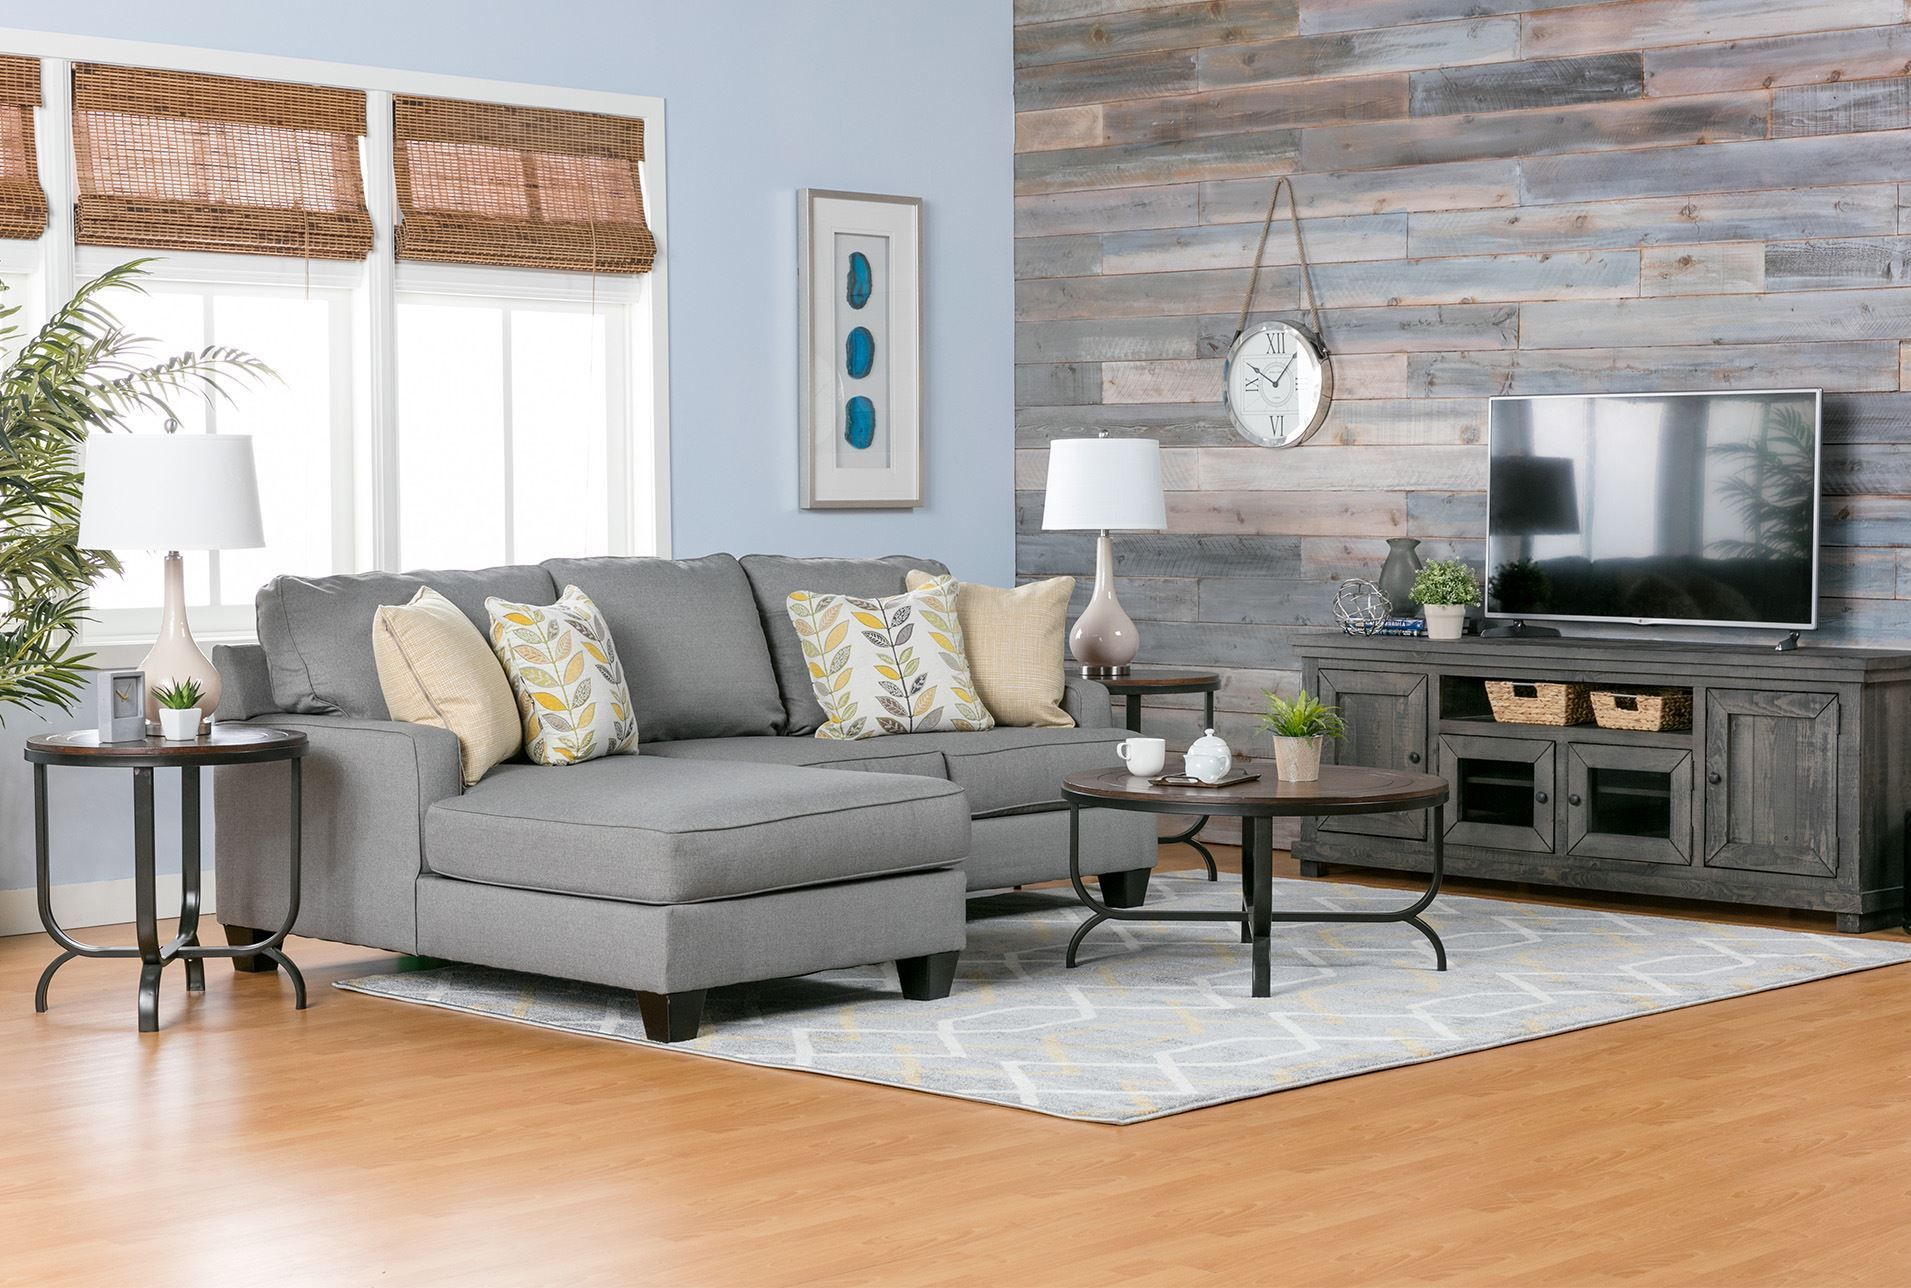 Sinclair Grey 74 Inch Tv Stand | Family Room | Pinterest | Living Inside Sinclair Grey 74 Inch Tv Stands (View 20 of 30)